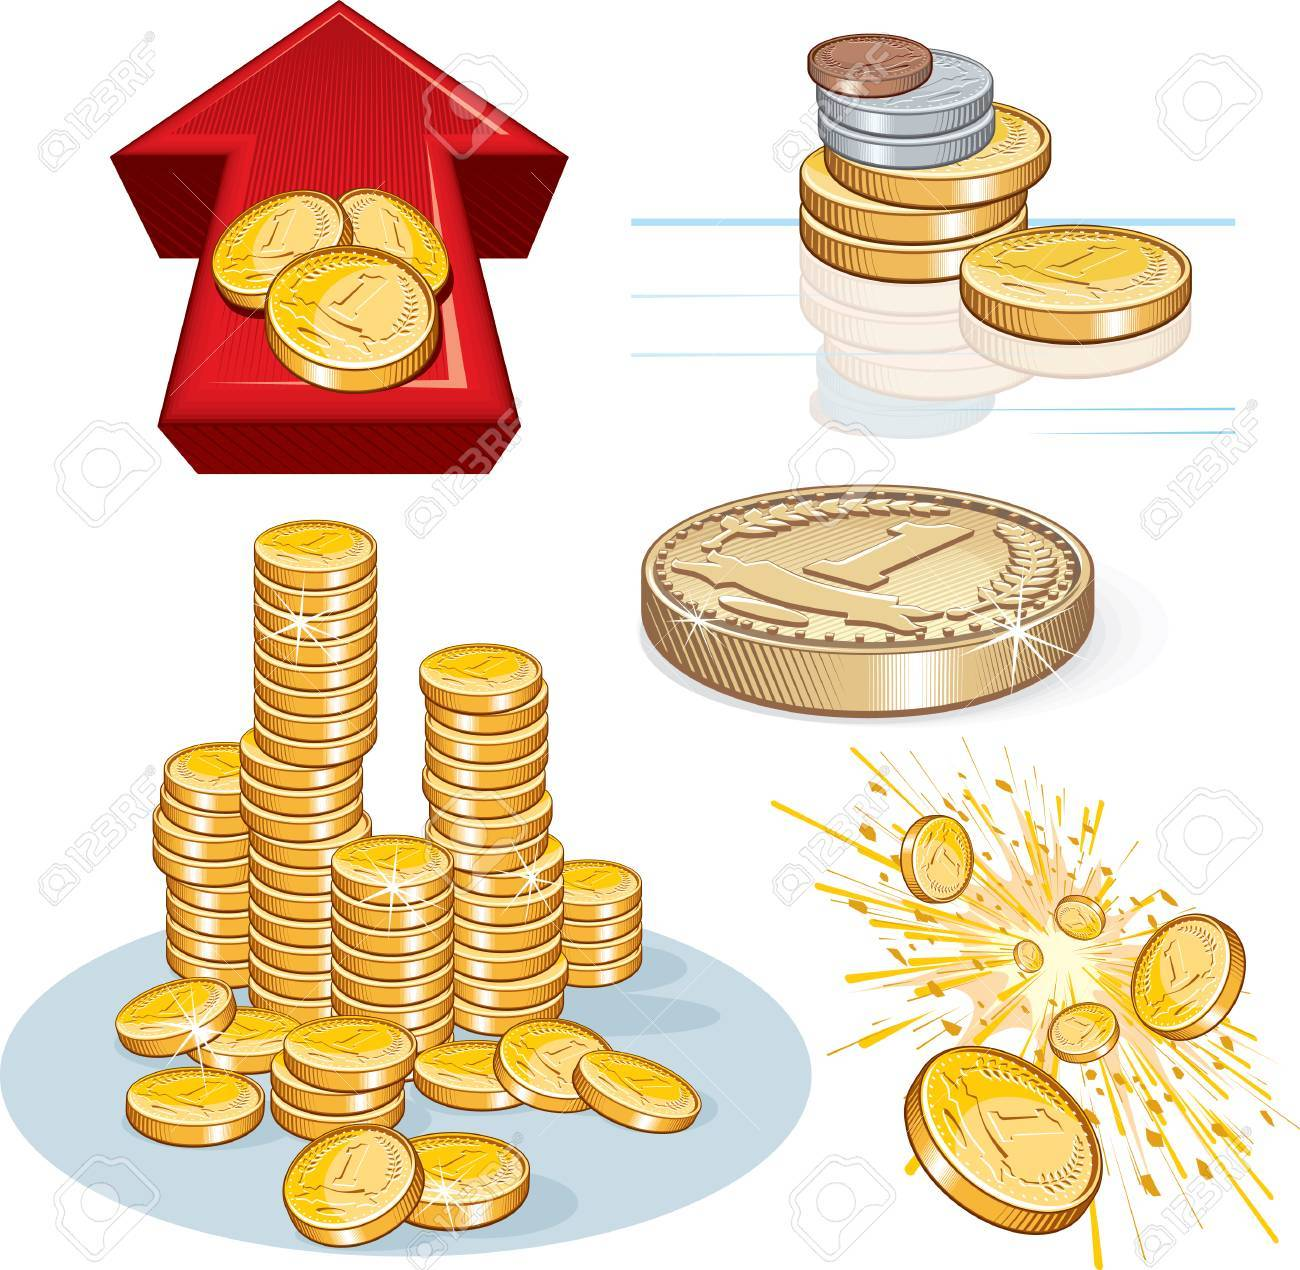 Detailed finance illustrations / icons - colors with no gradients, no meshes Stock Vector - 7714453